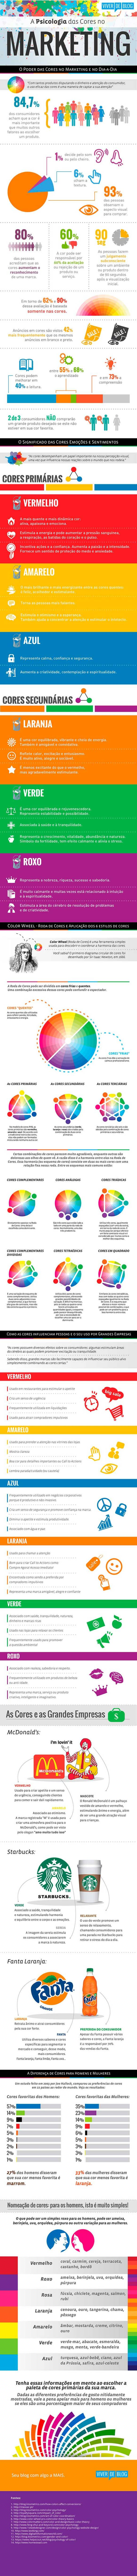 Infográfico_Psicologia_Cores_marketing